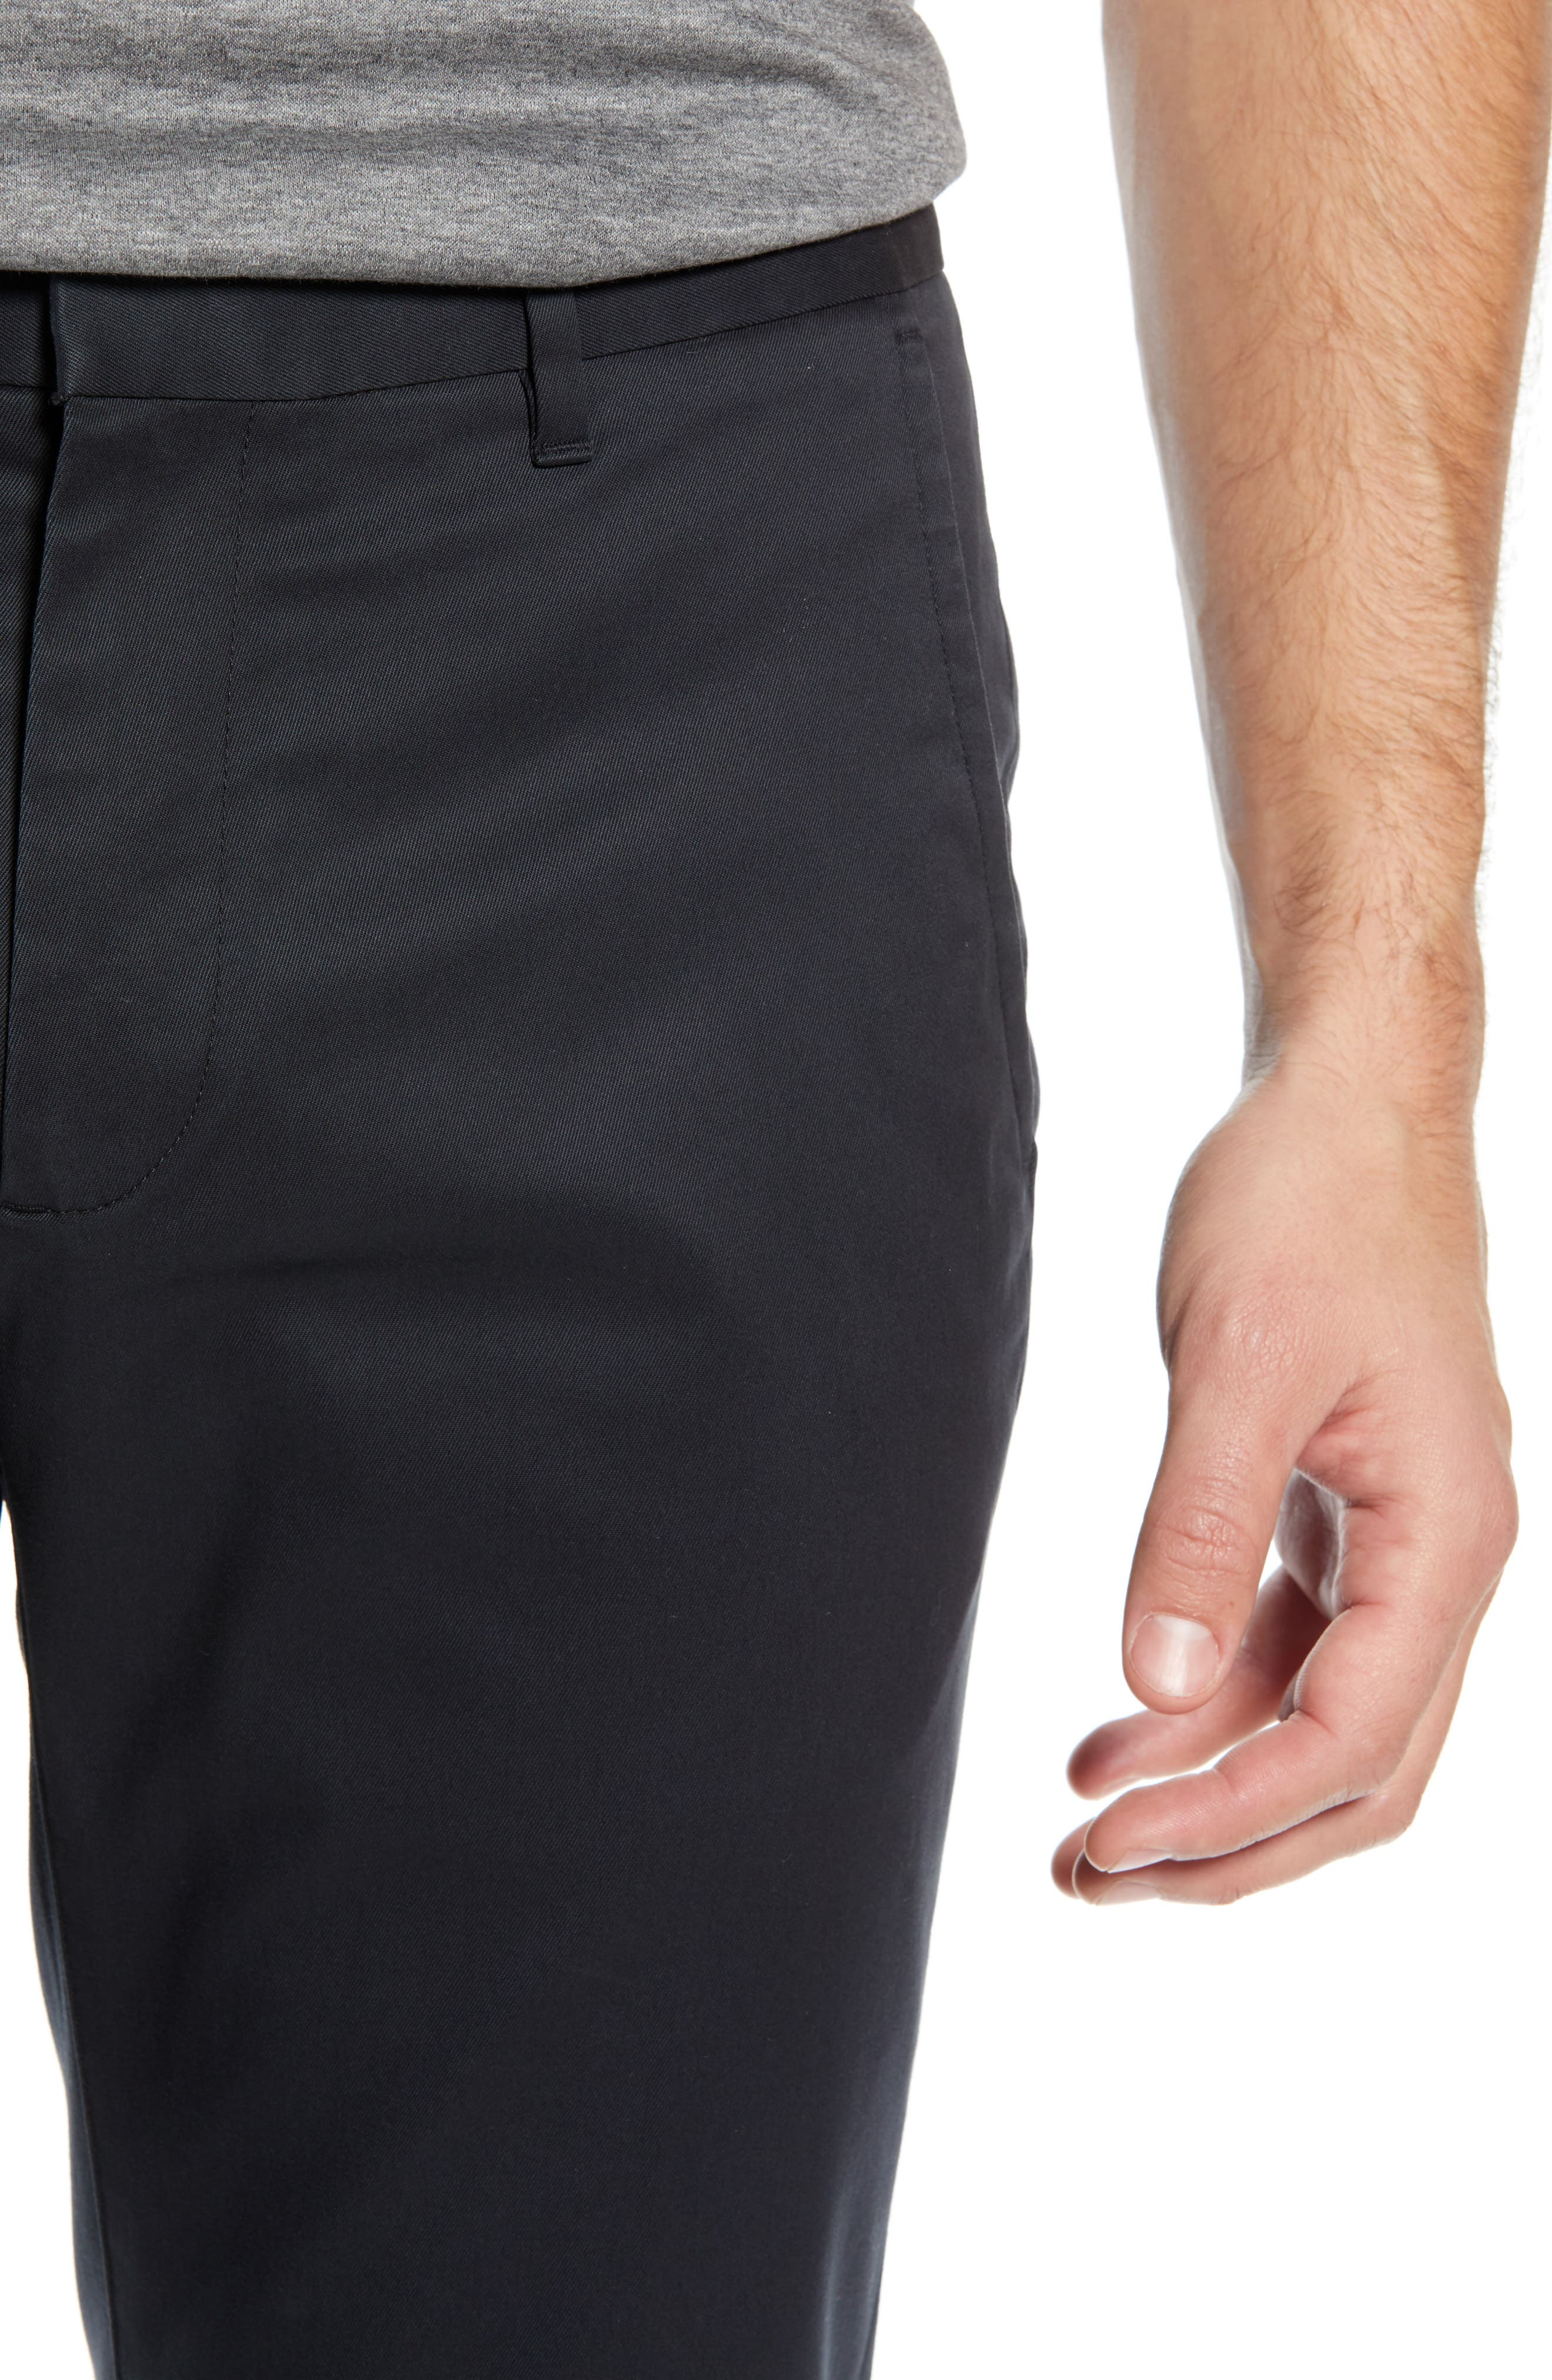 BONOBOS, Weekday Warrior Tailored Fit Stretch Dress Pants, Alternate thumbnail 5, color, BLACK